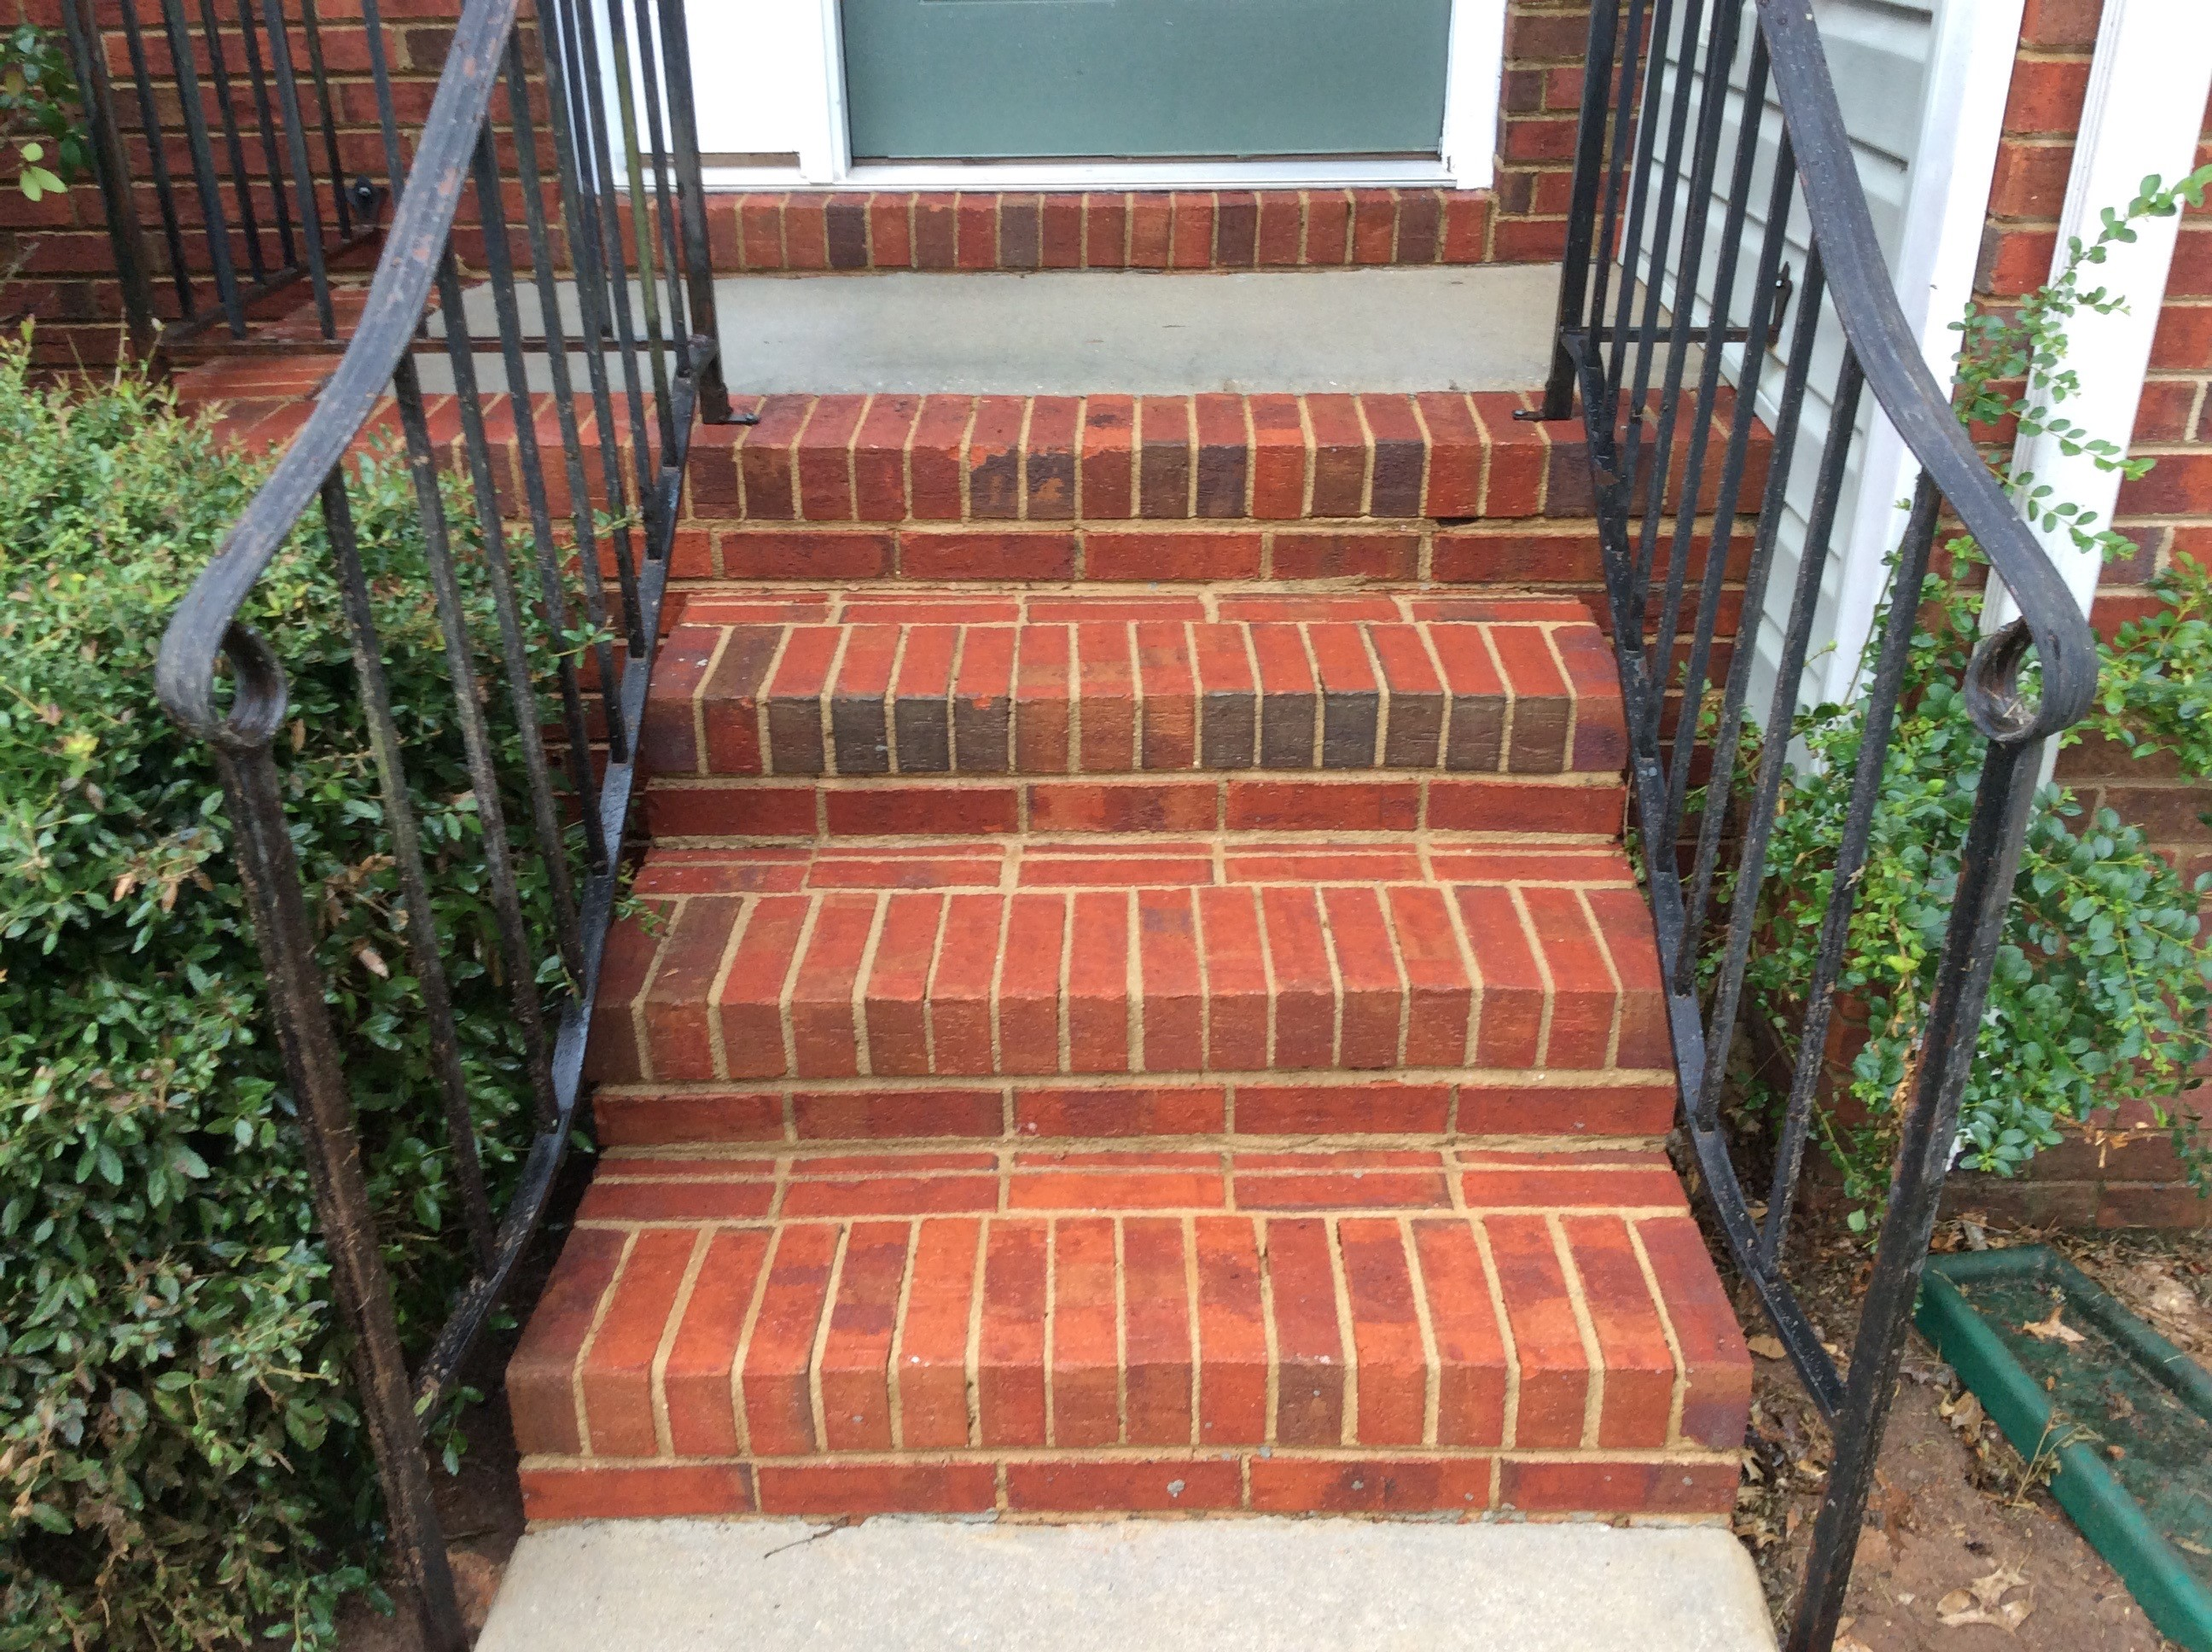 Brick steps after being pressure washed